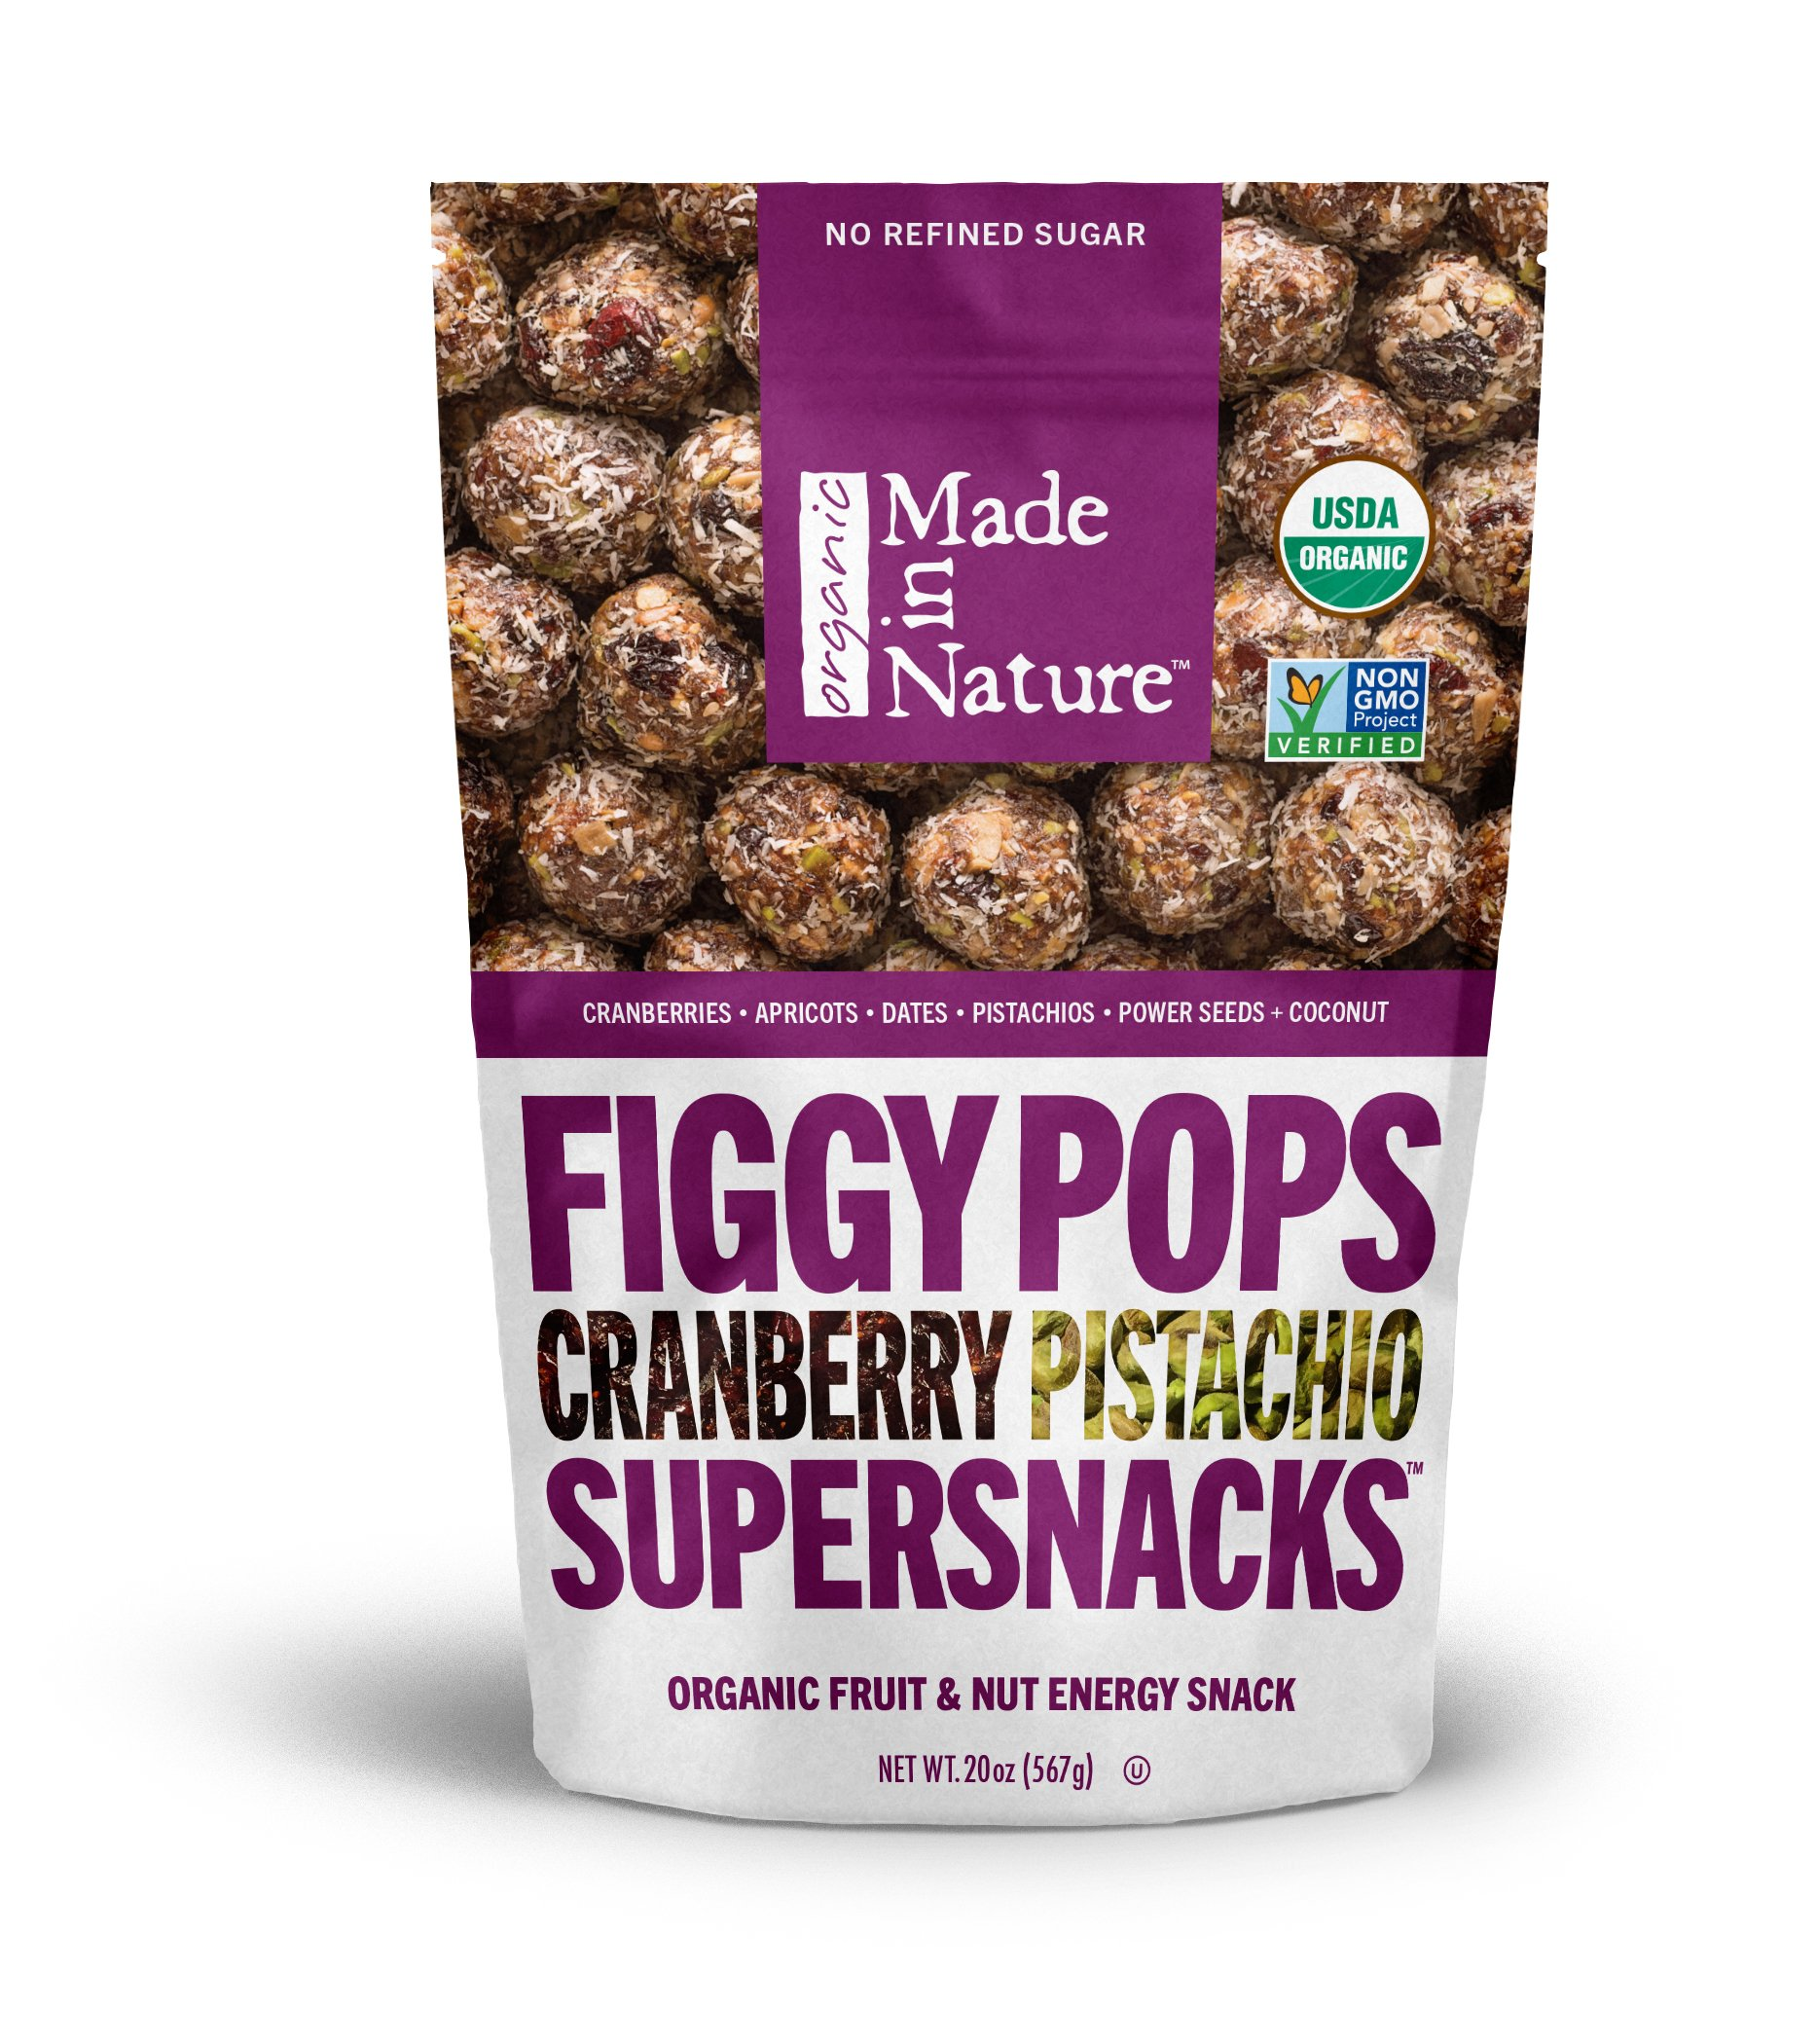 Made in Nature Organic Super Snacks, Cranberry Pistachio Figgy Pop, 20 Ounce